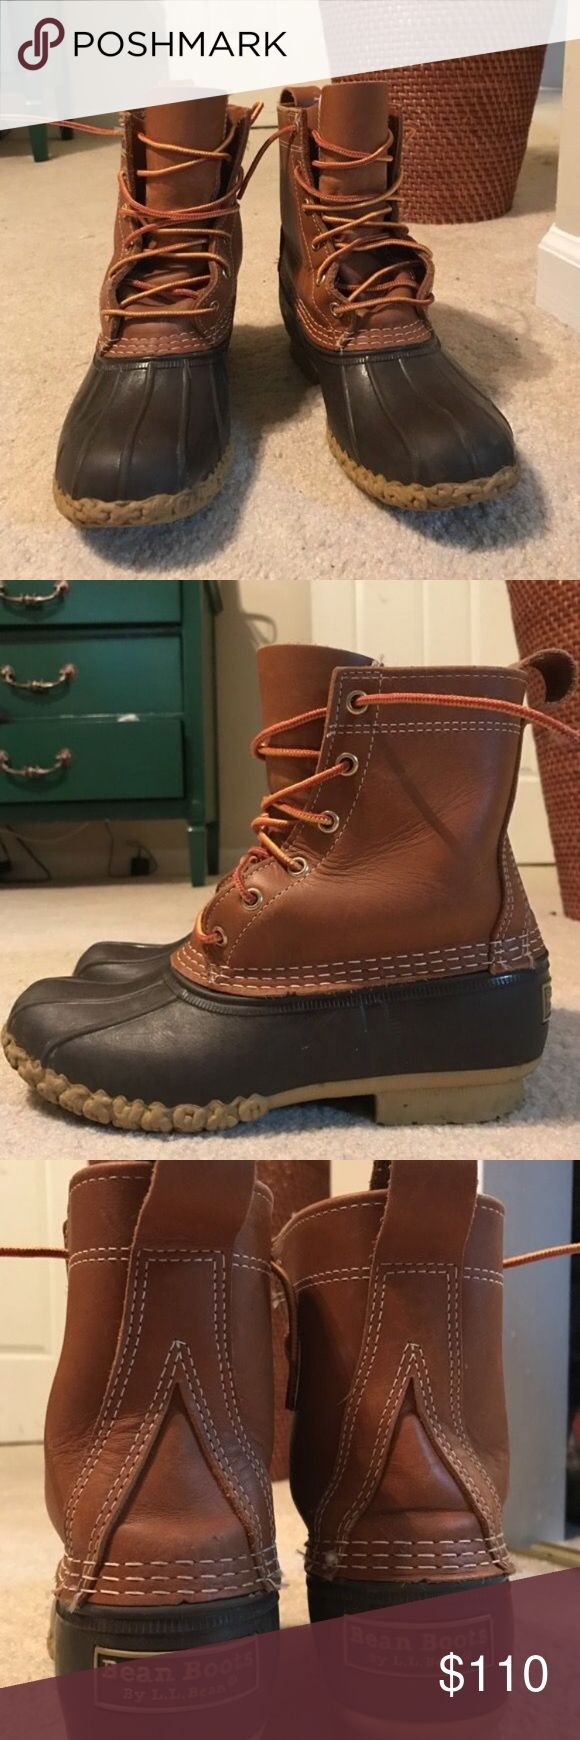 LL Bean Boots Women's LL Bean Boots size 7 way too big on me worn maybe 6-7 times mid-good condition Shoes Winter & Rain Boots